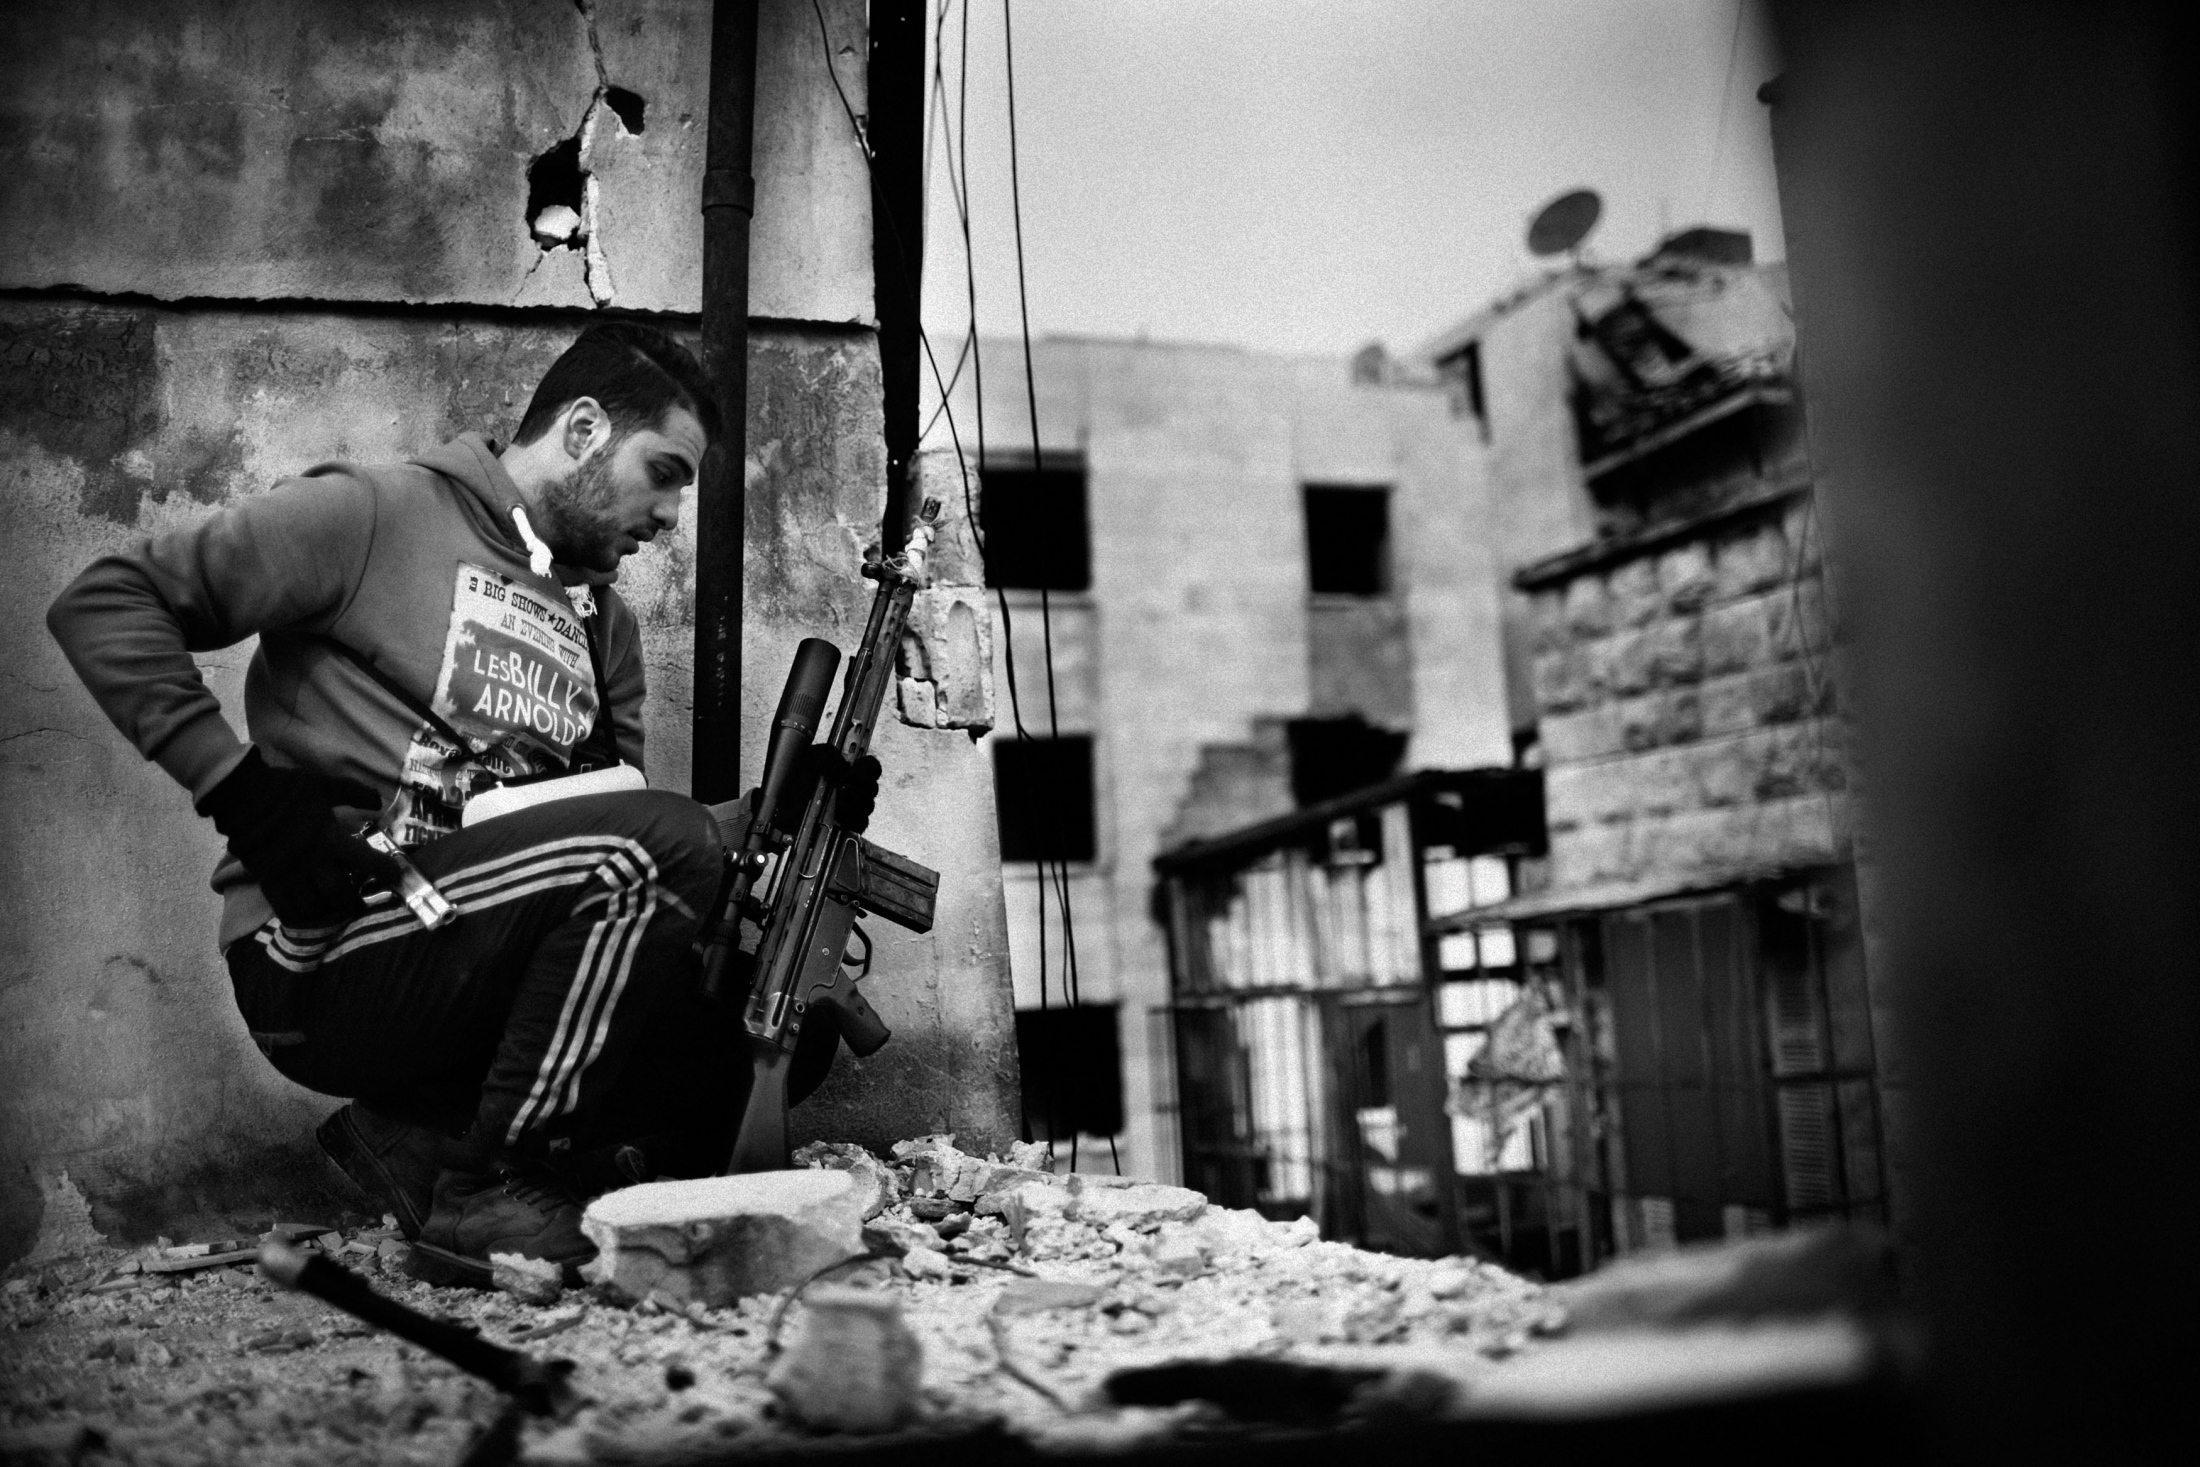 """A Syrian rebel sniper taking position in the frontline of Izaah neighborhood of Aleppo, Syria, Wednesday, Jan. 18, 2013. The United Nations estimated that more than 400,000 people have been killed in Syria's 60-month-old uprising against authoritarian rule, a toll one-third higher than what anti-regime activists had counted. The U.N. human rights chief called the toll """"truly shocking."""" Copyright: Spanish Photojournalist Andoni Lubaki"""